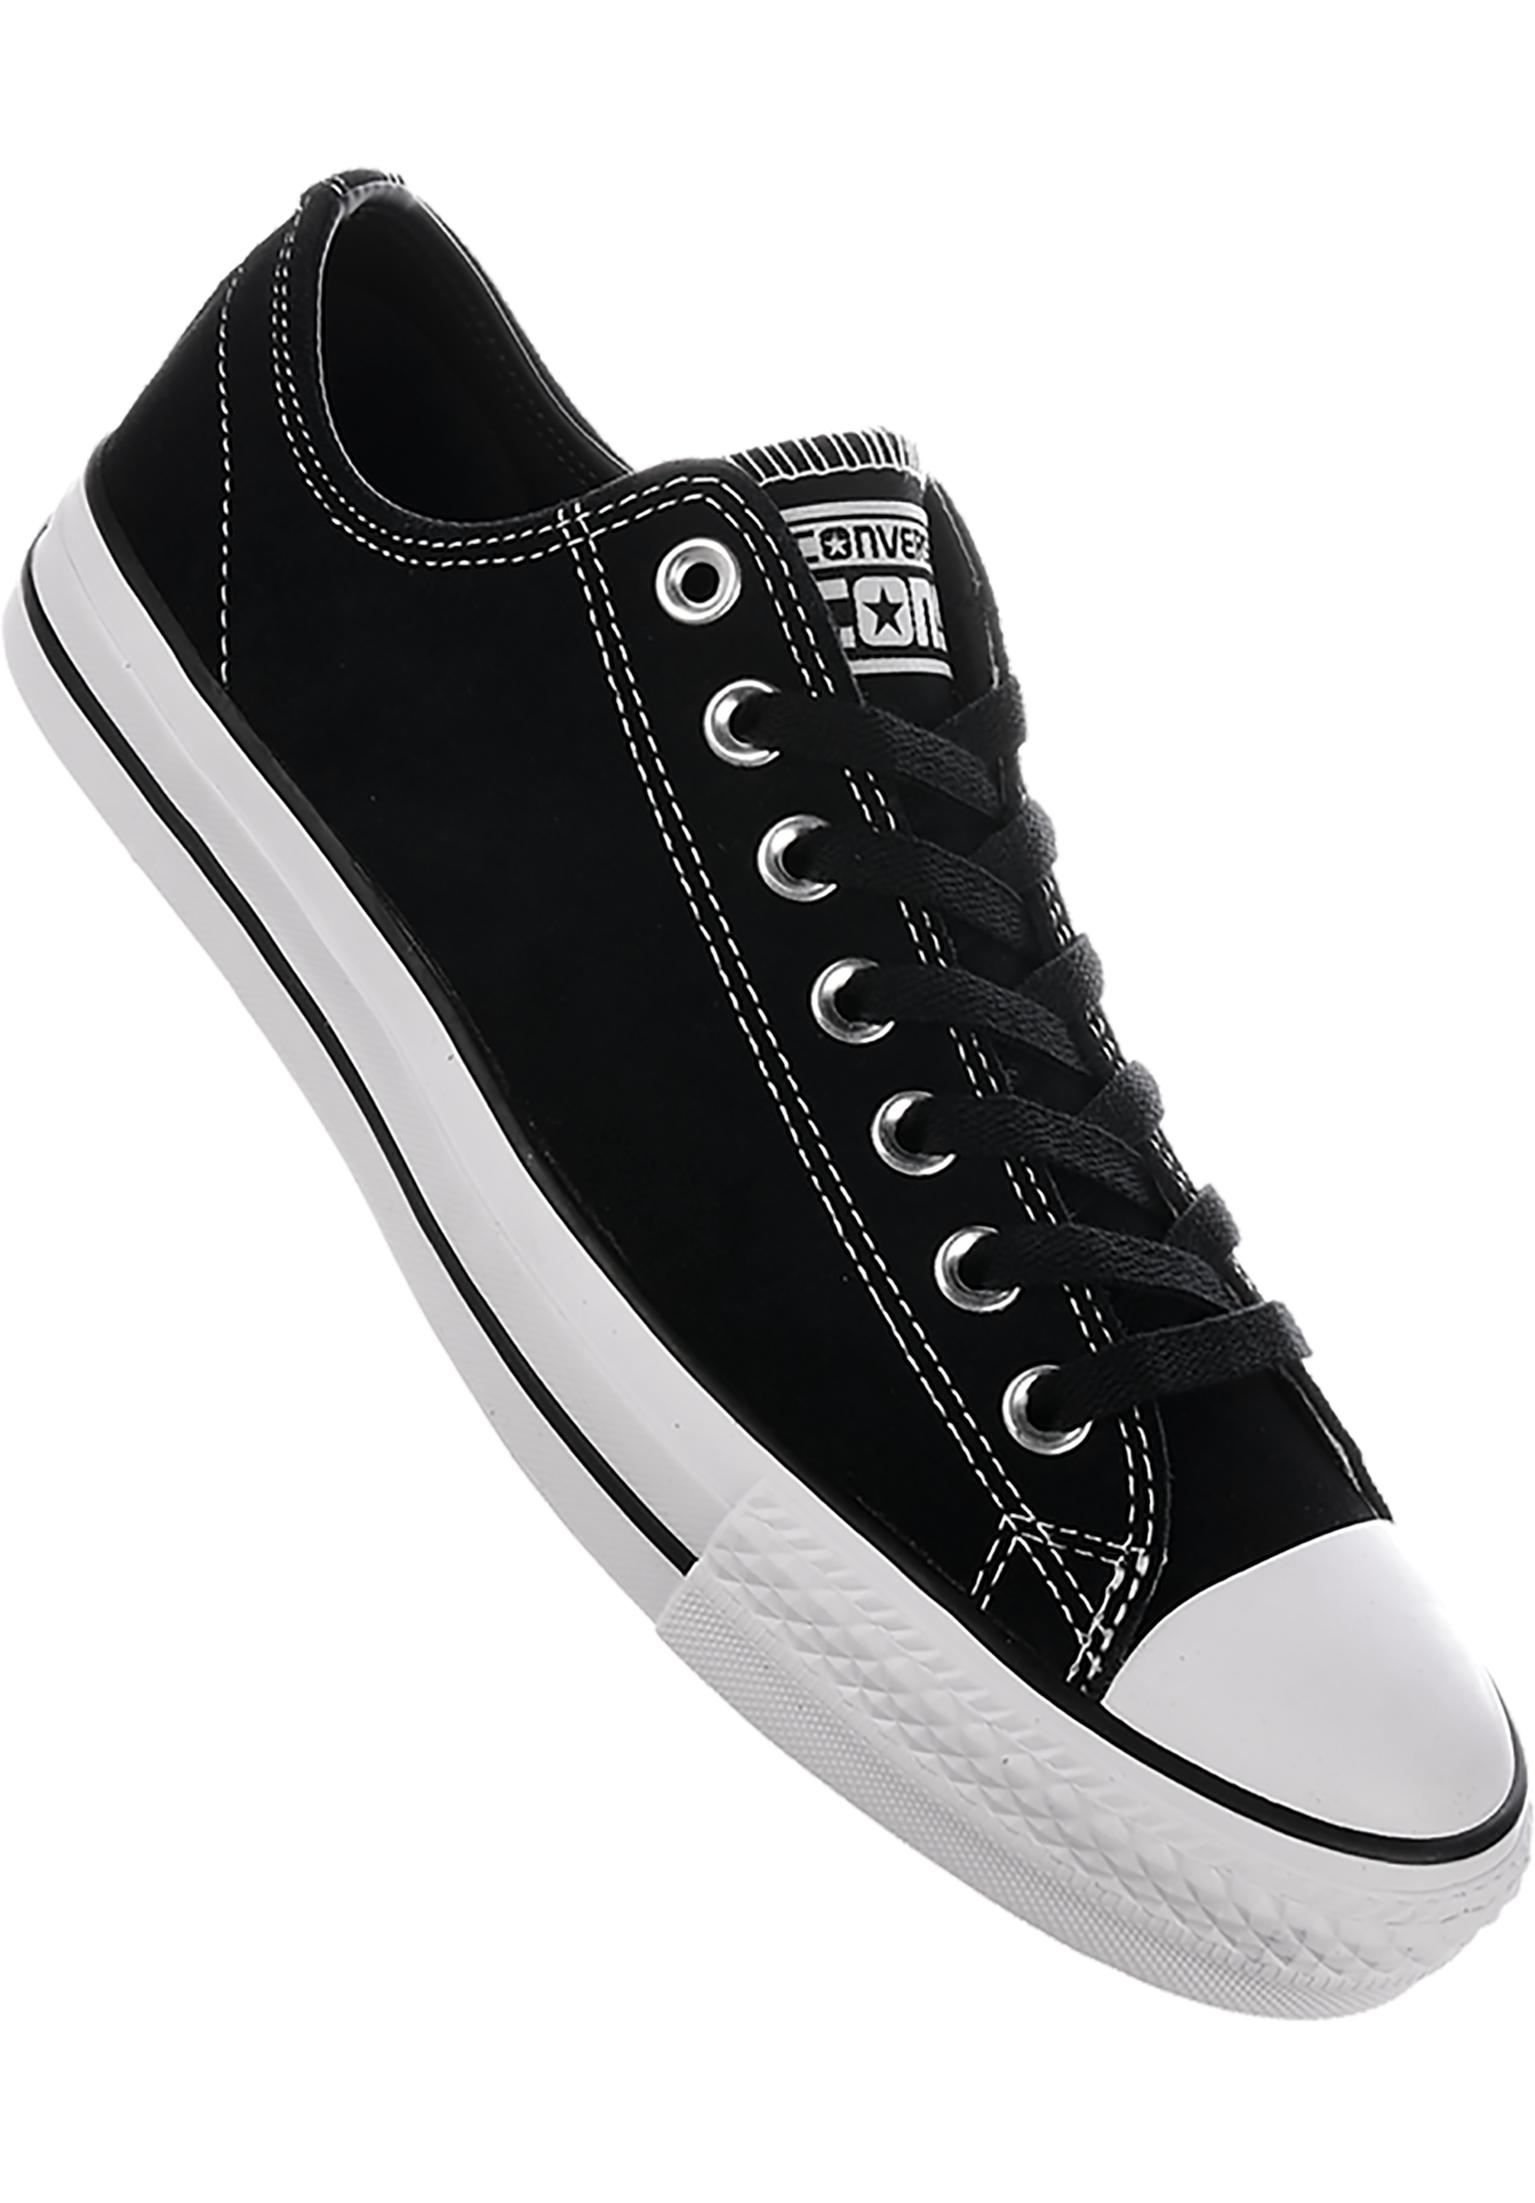 1dd9d9941b83 CTAS Pro Suede Ox Converse CONS All Shoes in black-black-white for Men